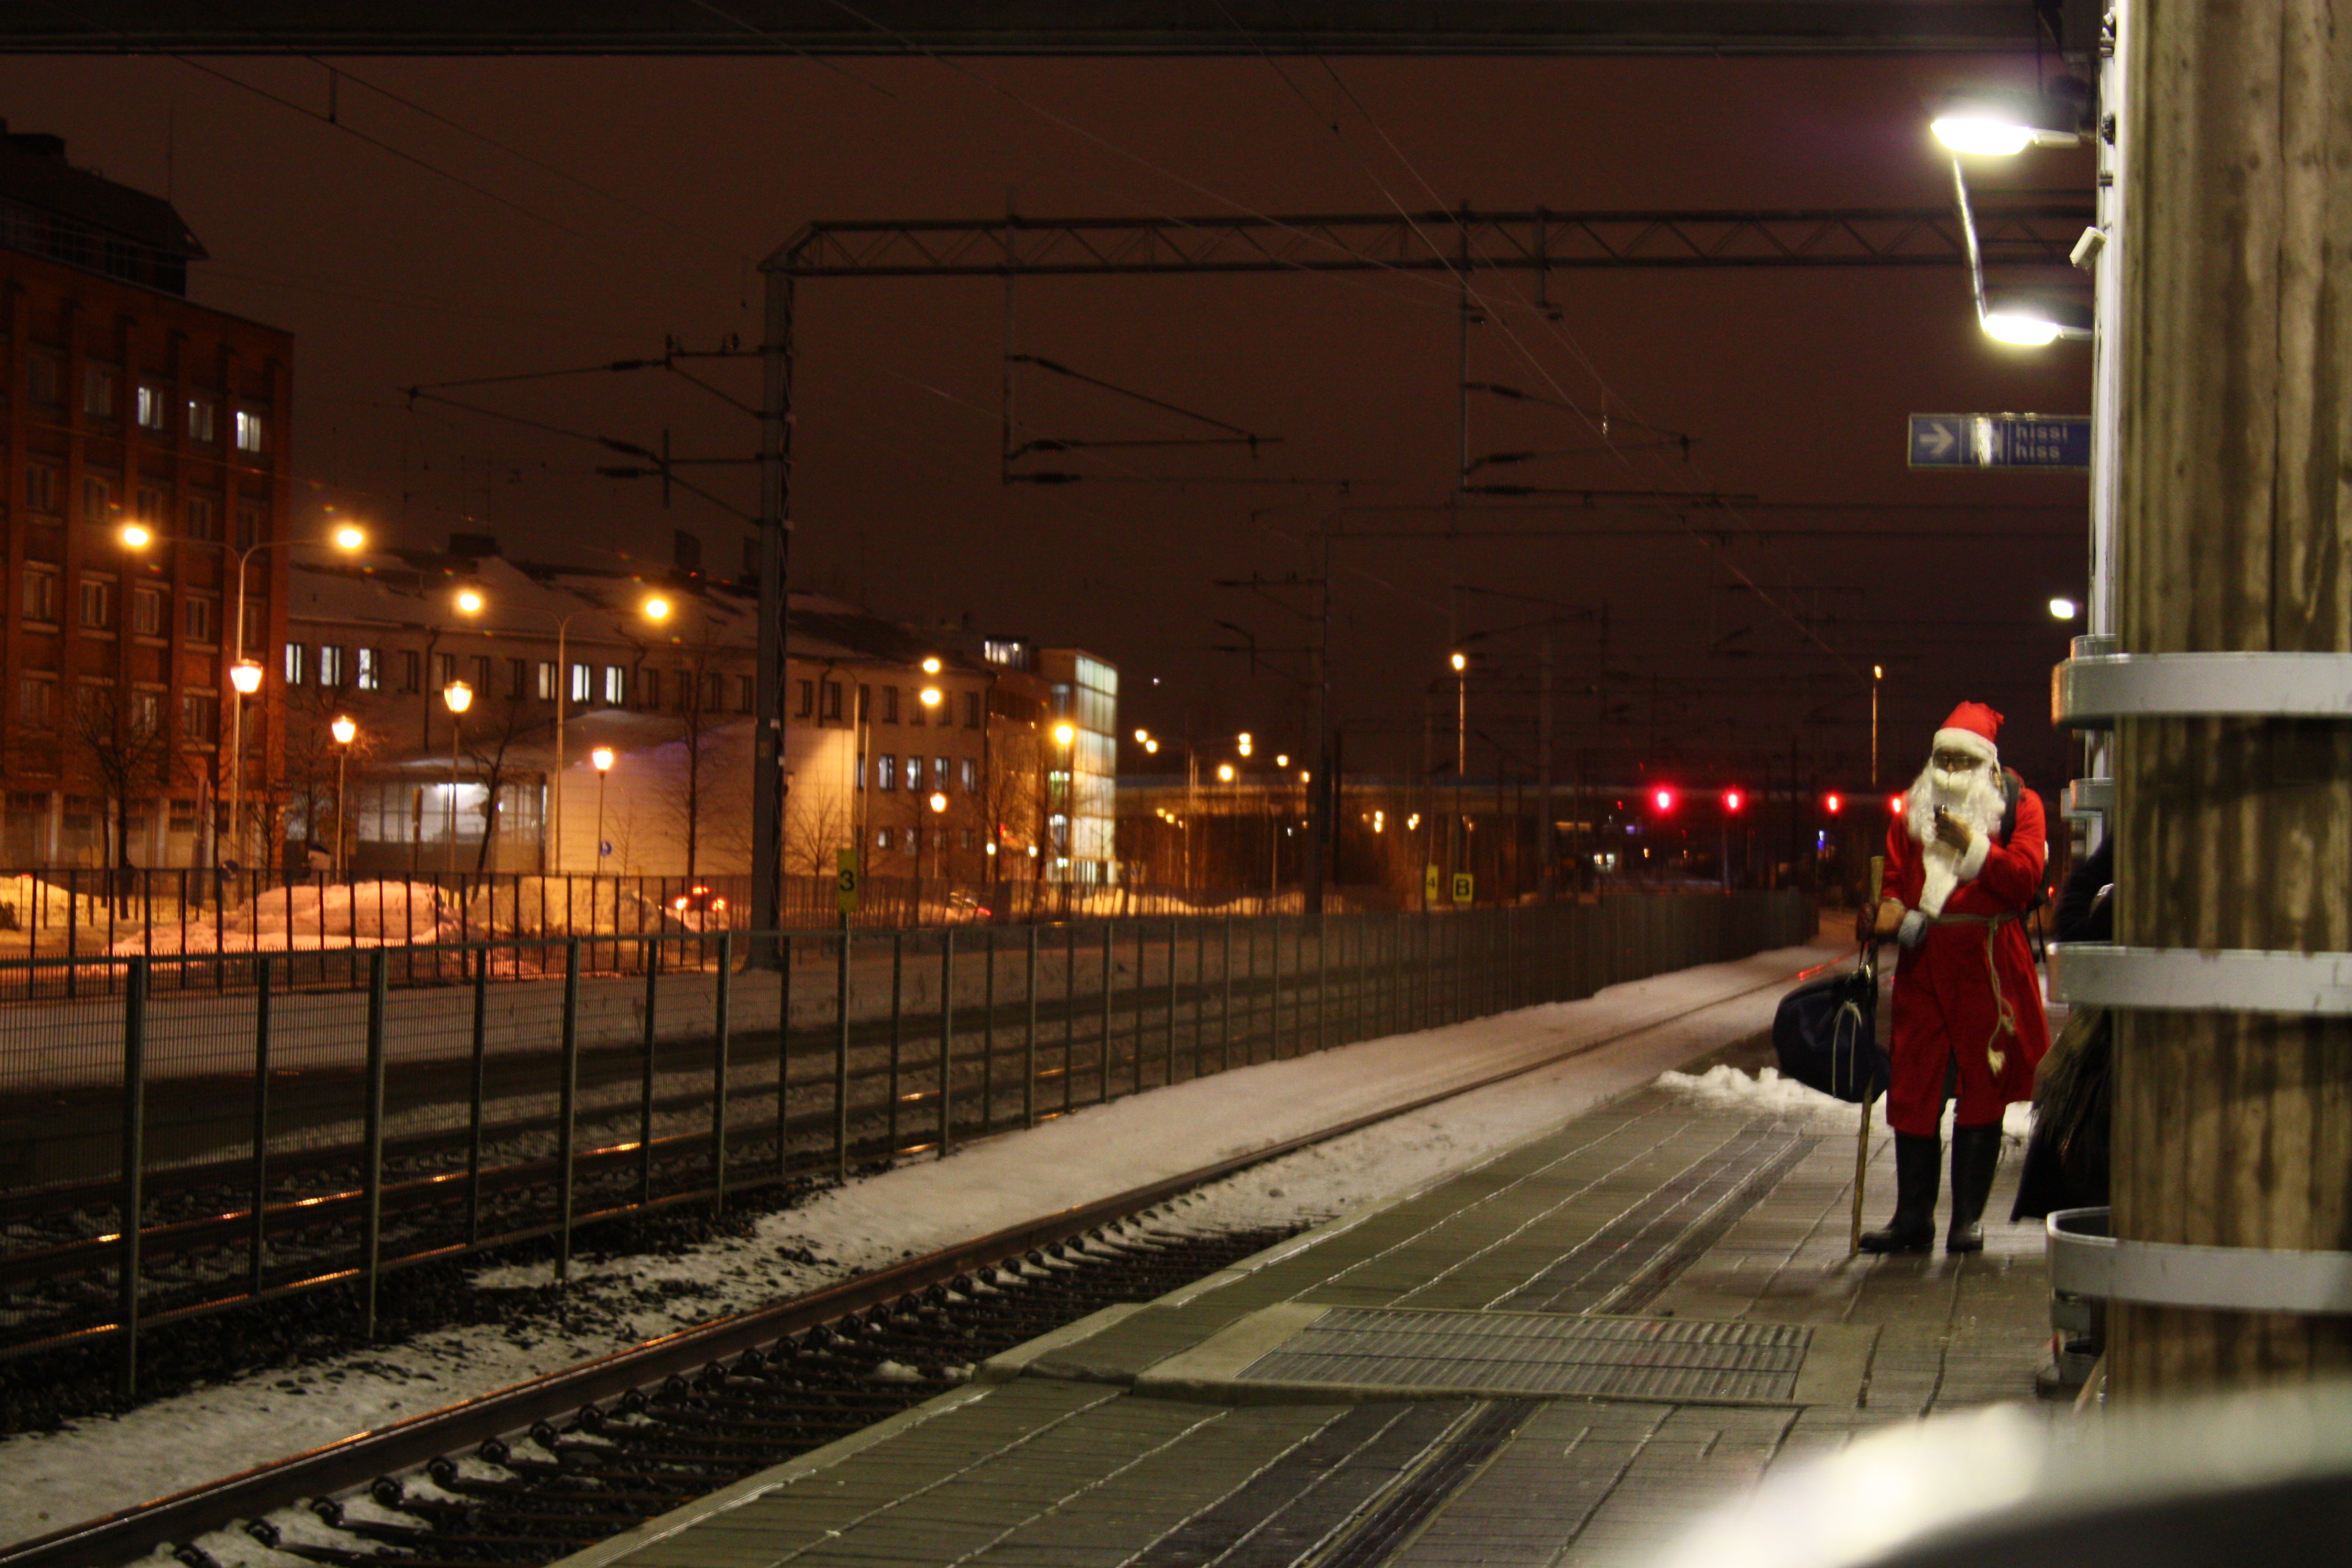 Santa Claus waiting for a train at the Malmi railway station in Helsinki, Finland. Photo taken on November 27, 2008.